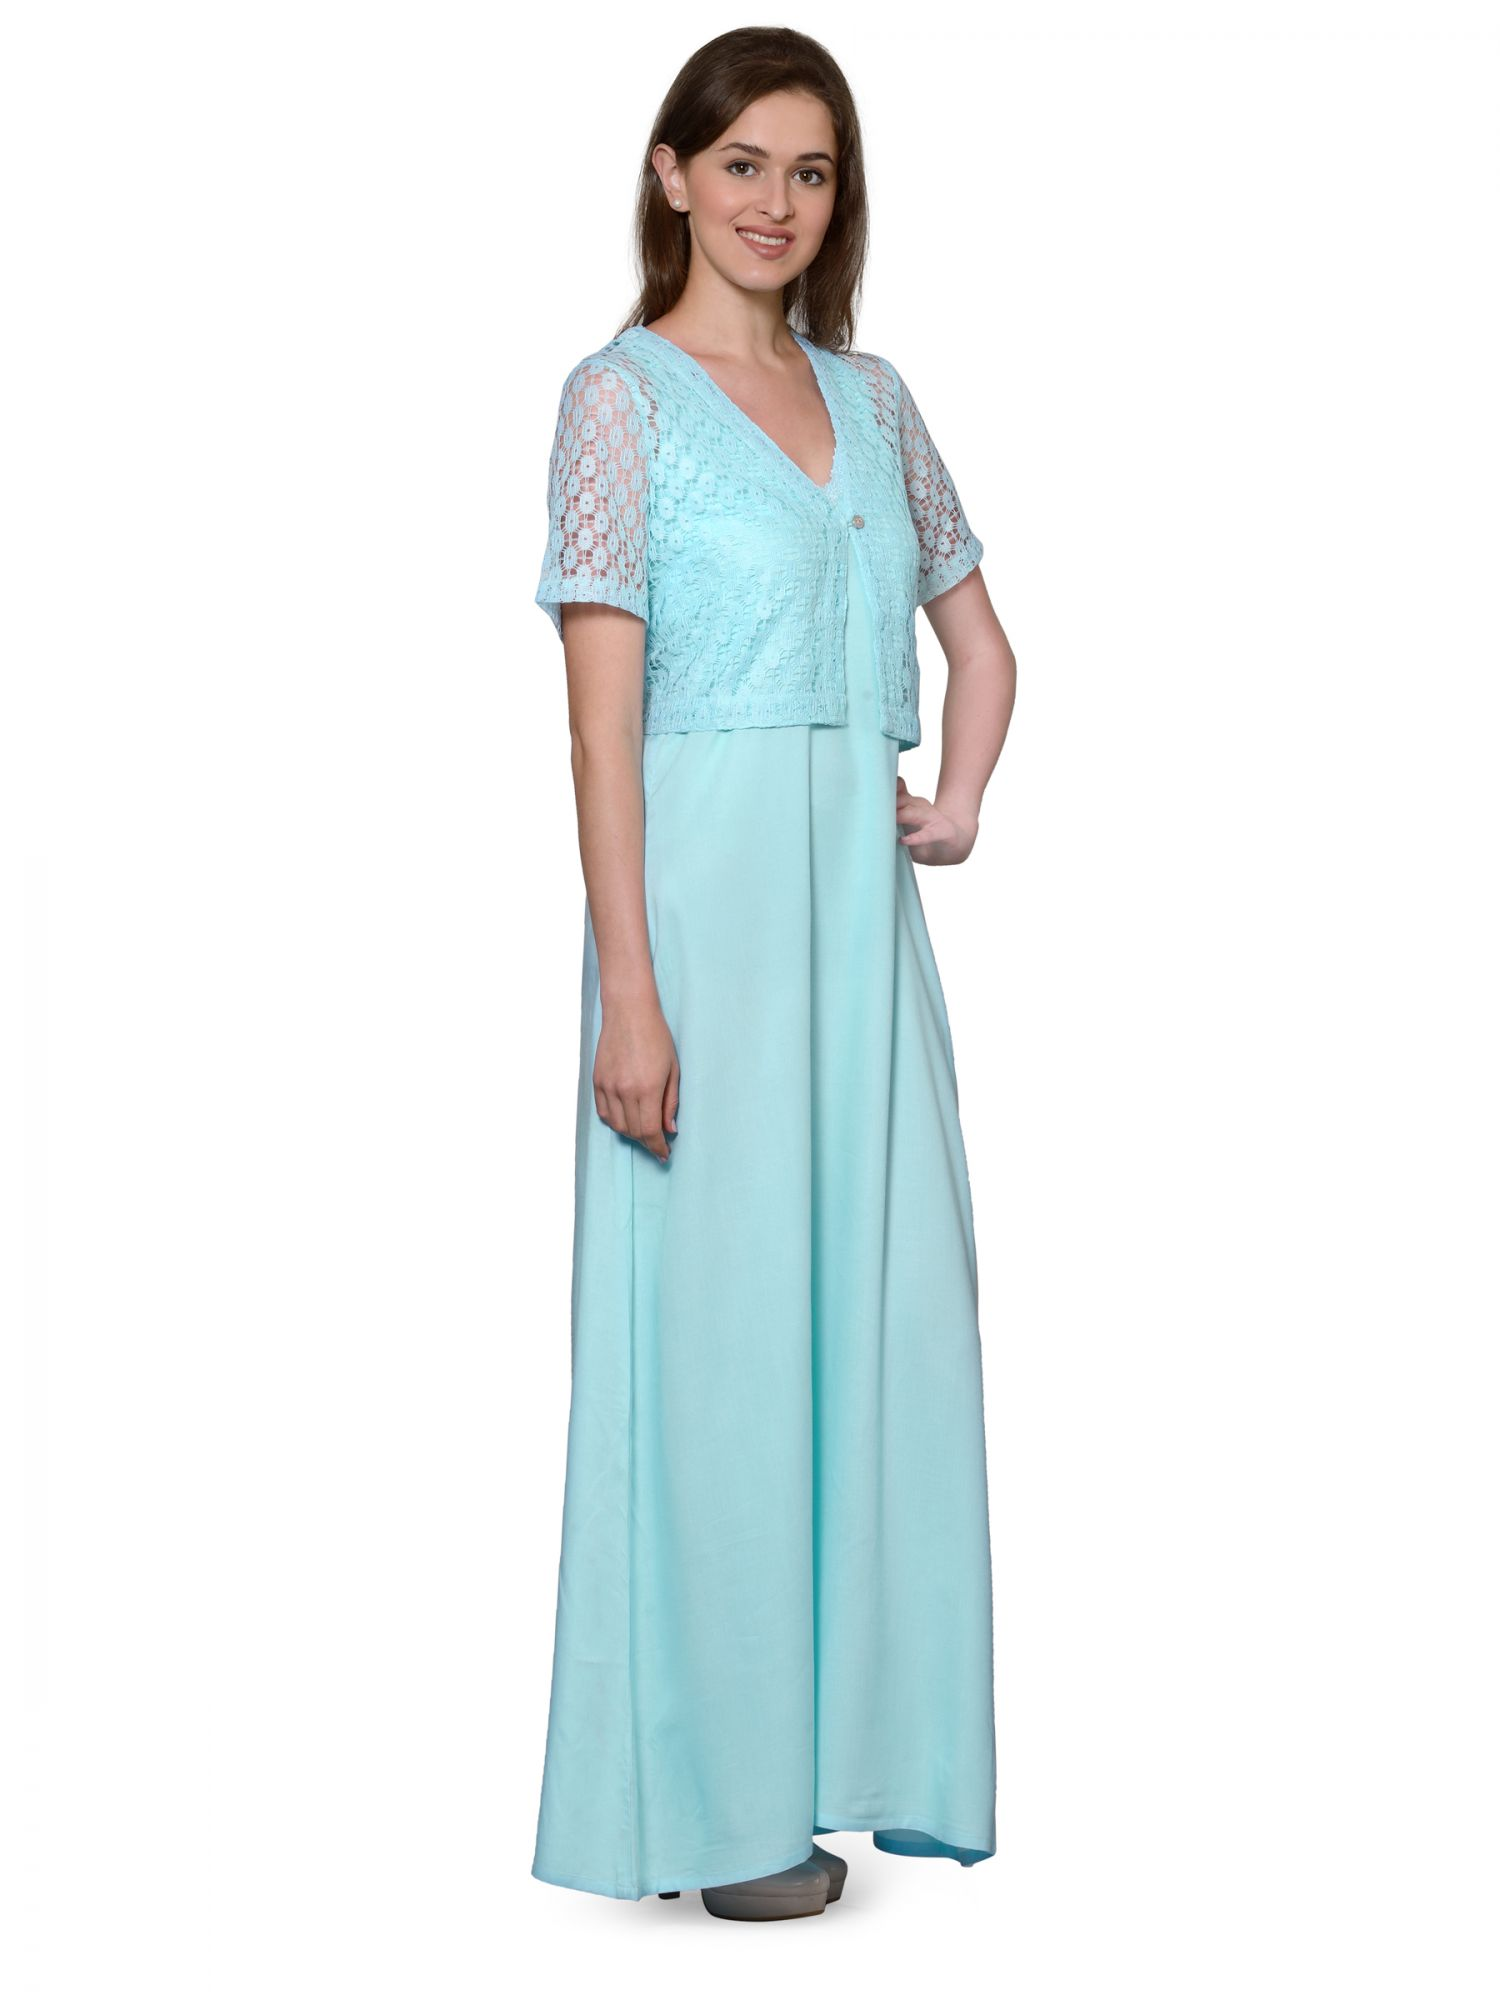 Lace Work Nighty with Shrug in Light Blue